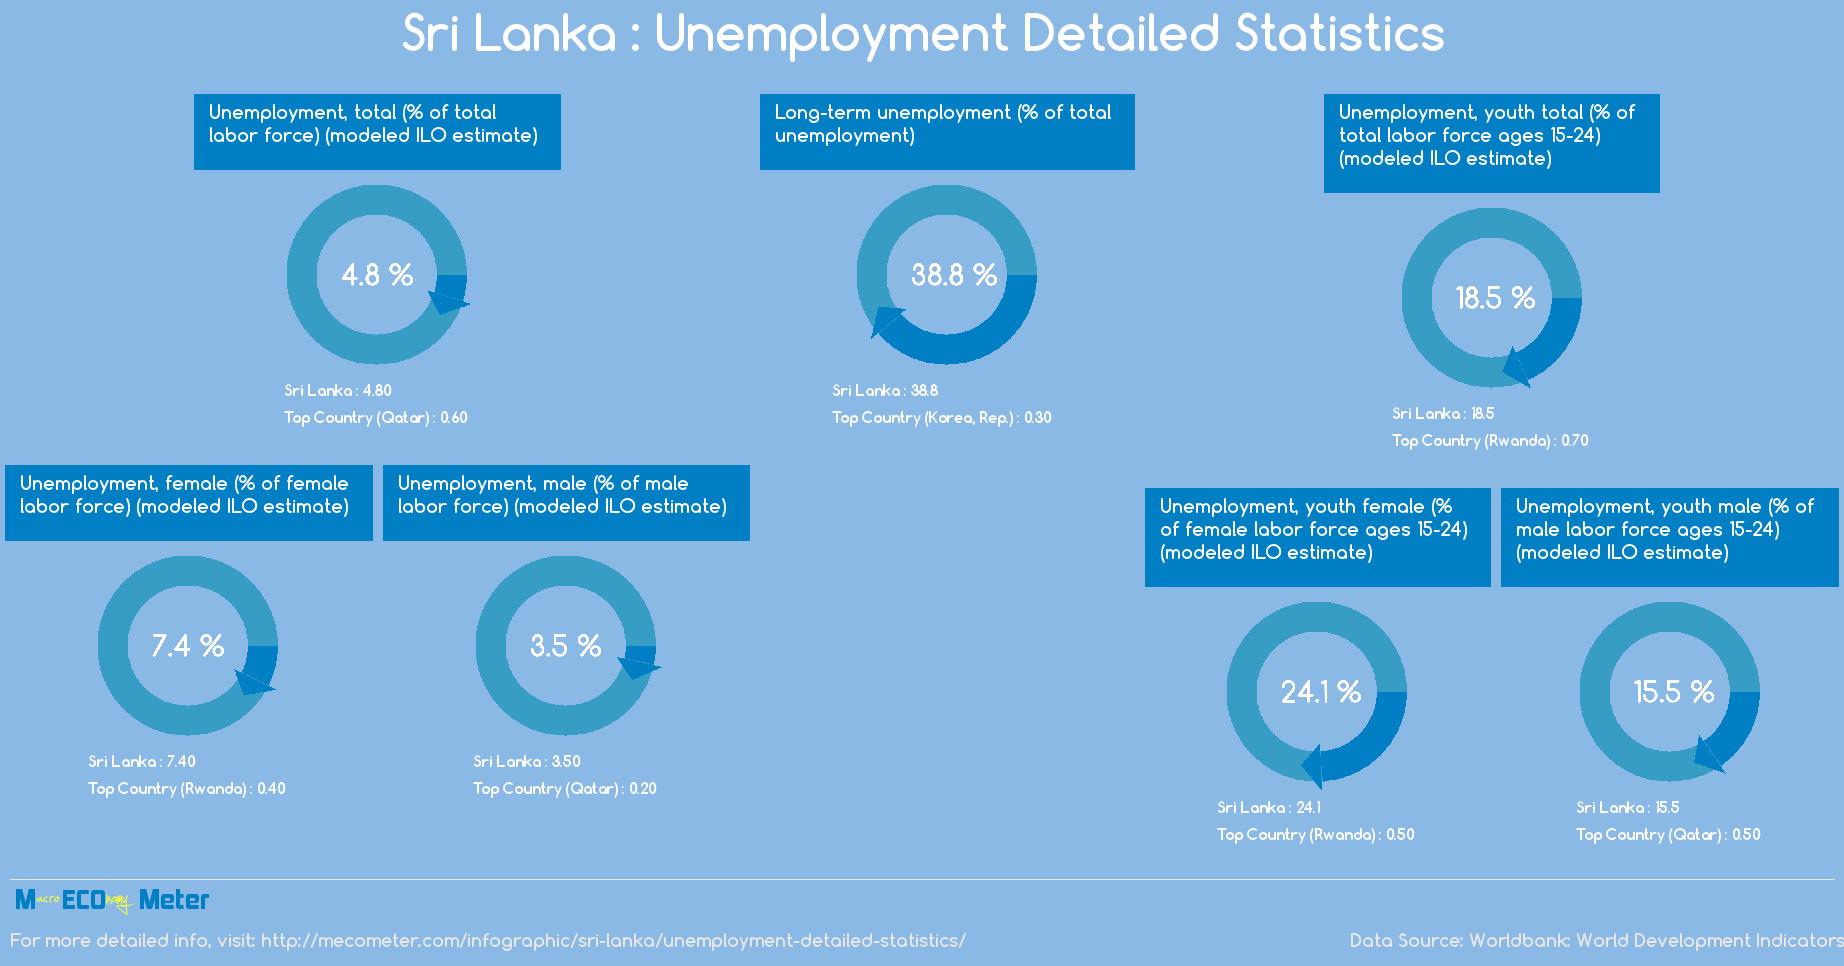 Sri Lanka : Unemployment Detailed Statistics